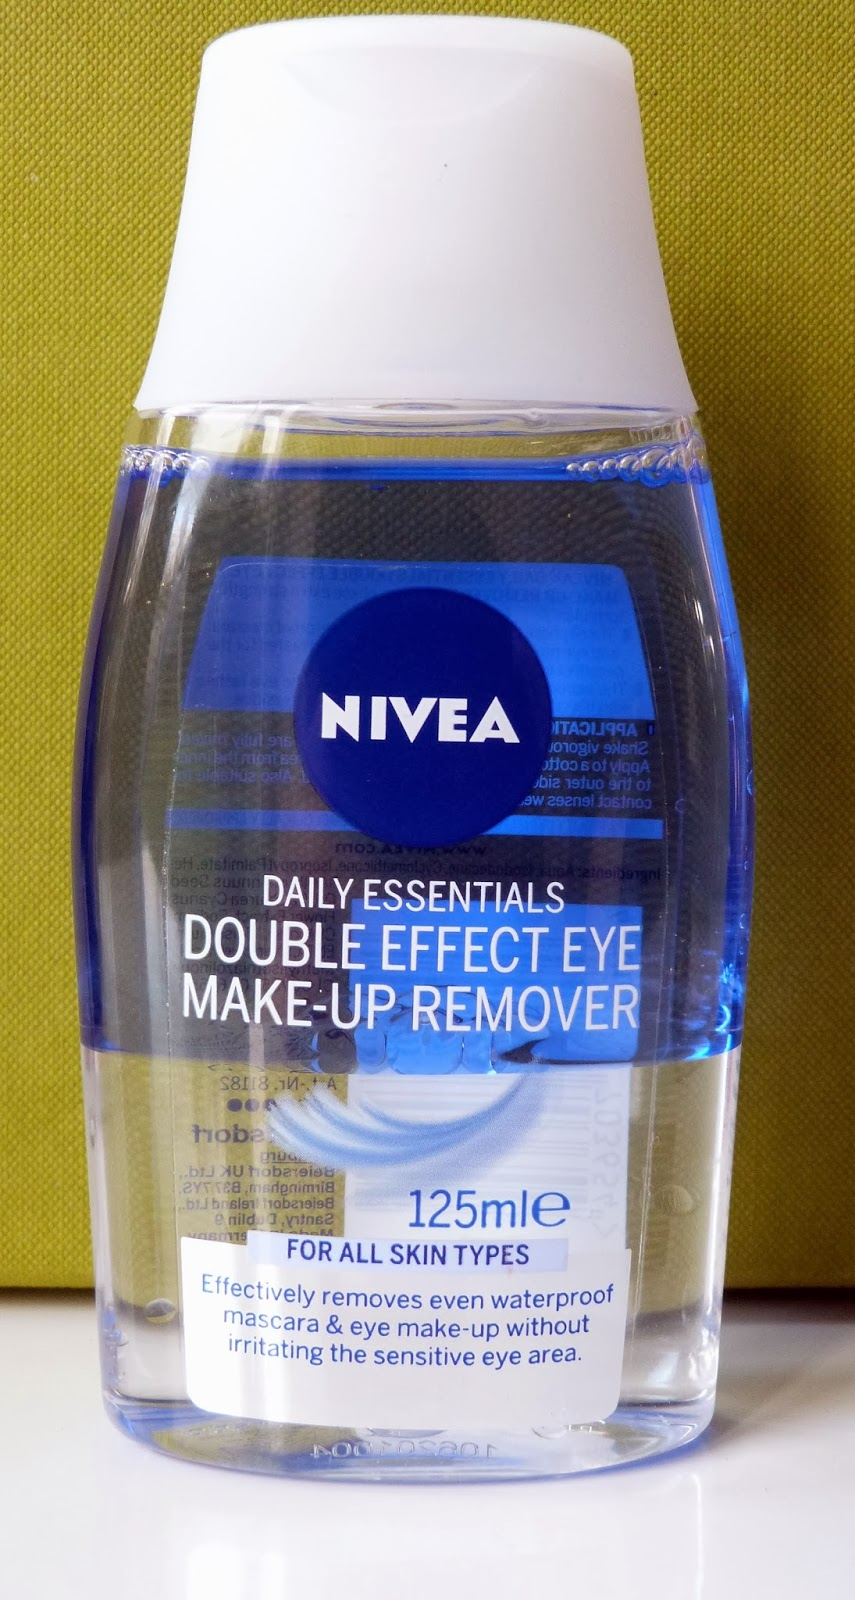 Nivea Double Effect Eye Make-up Remover